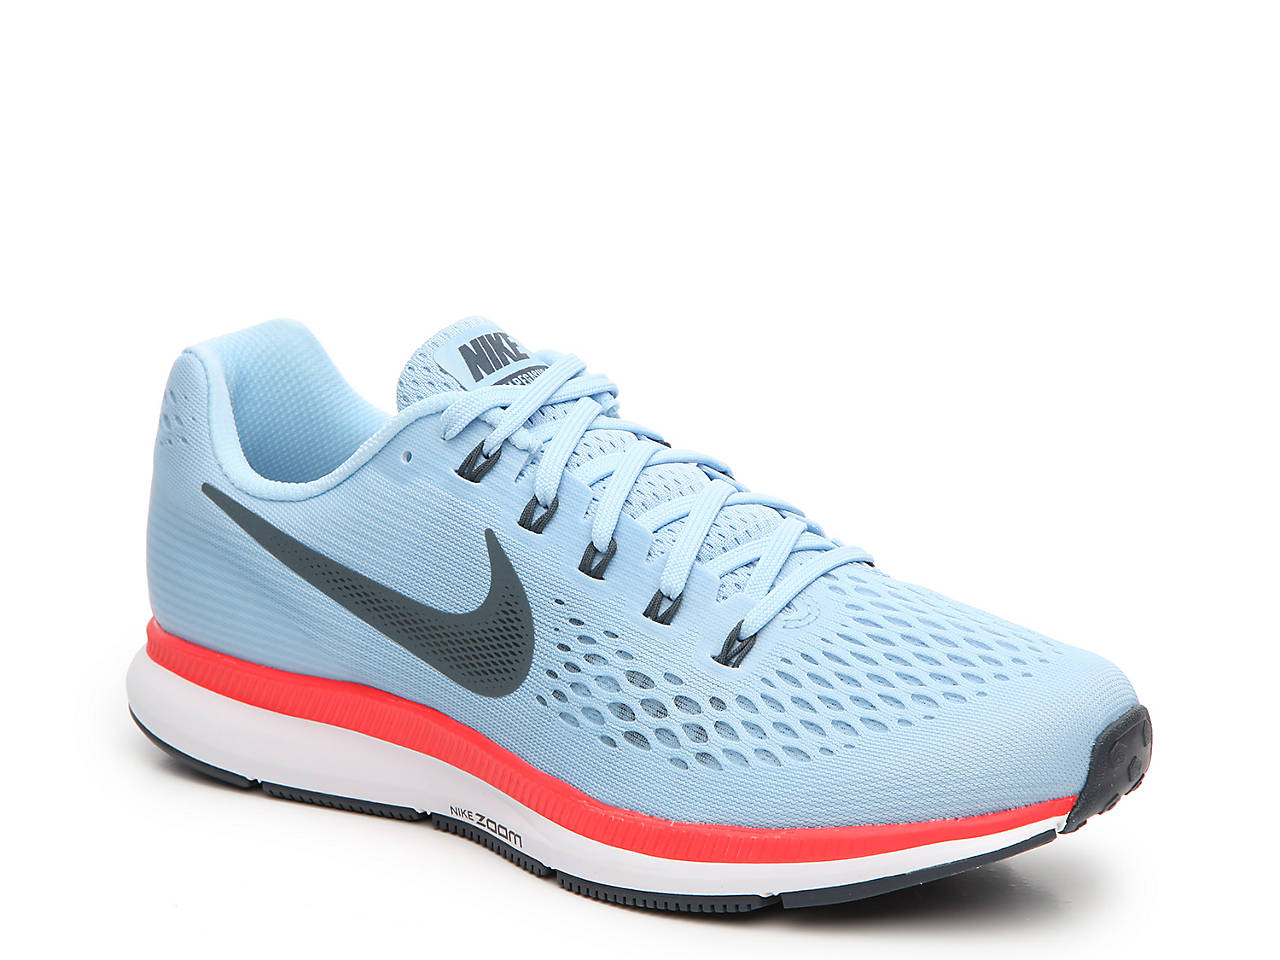 What Are The Best Tennis Shoes For Arch Support